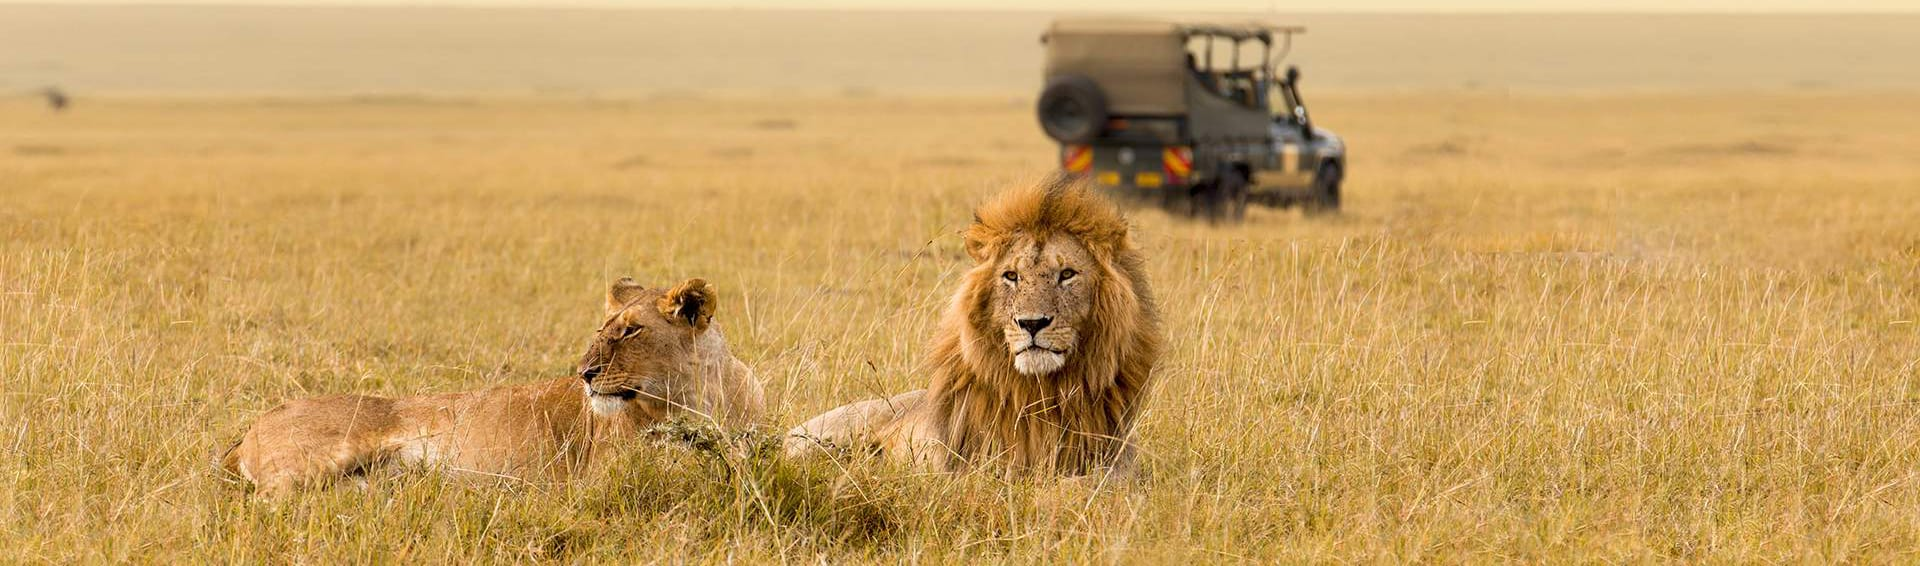 Lions laze in the expansive African grasslands.